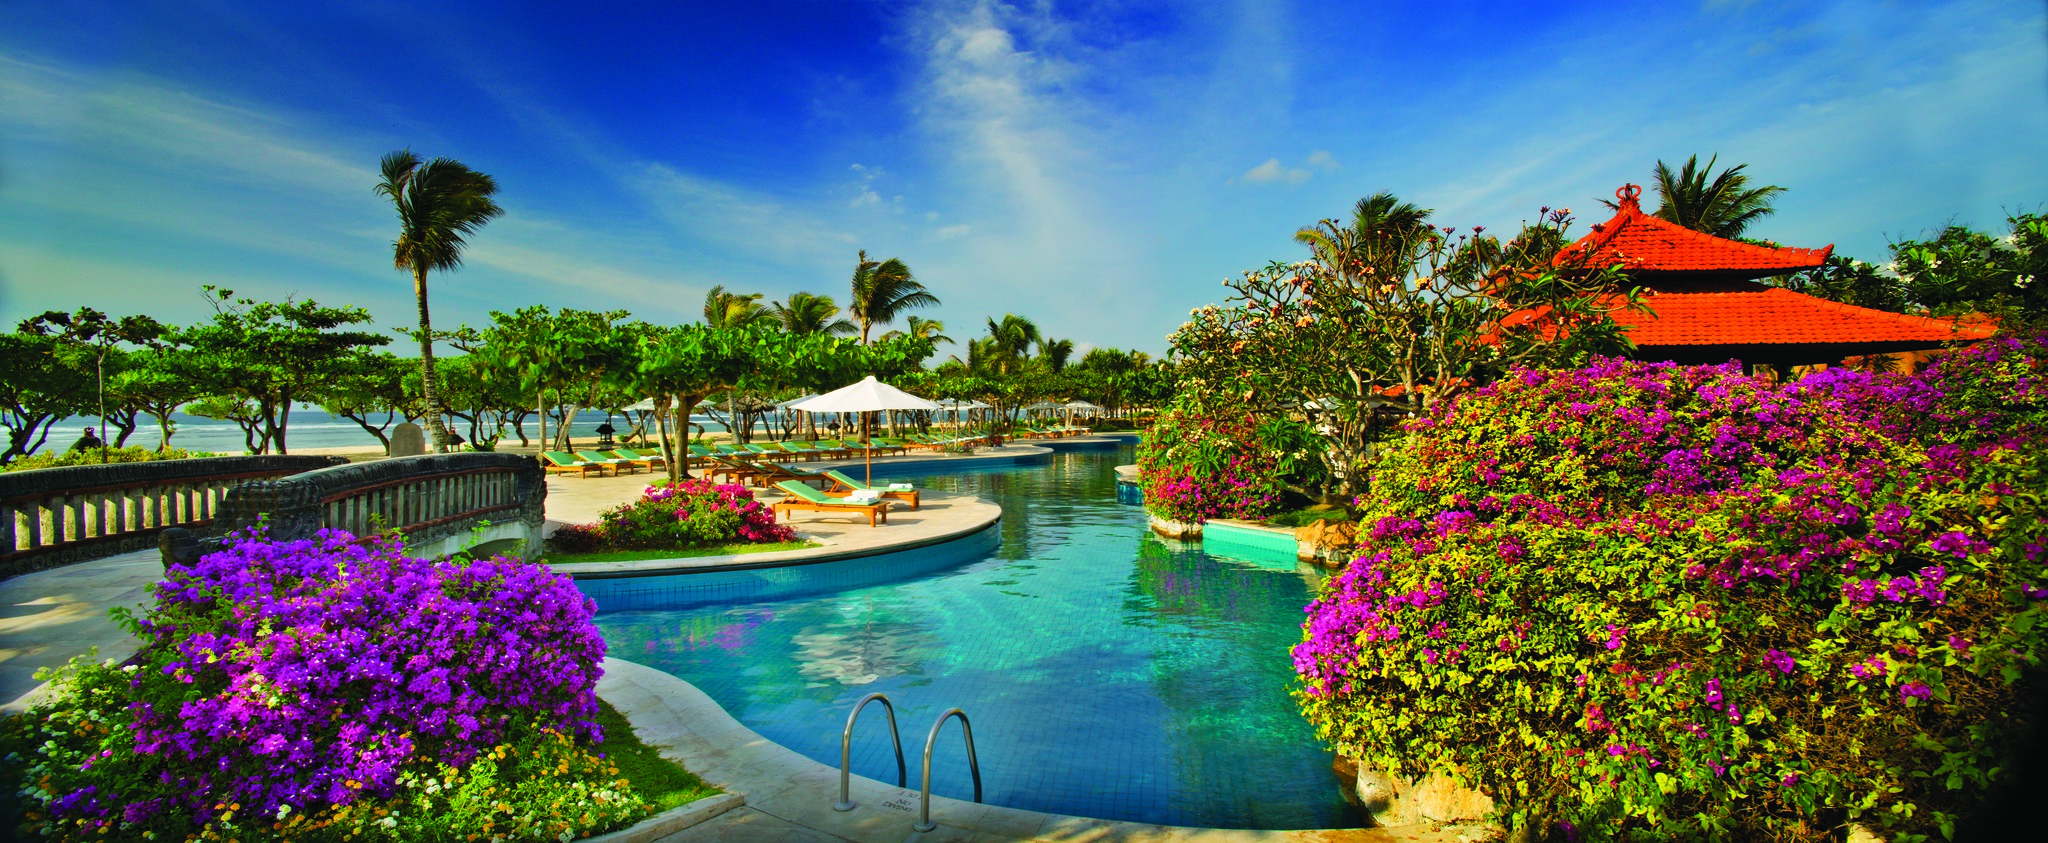 Grand Hyatt Bali Pool